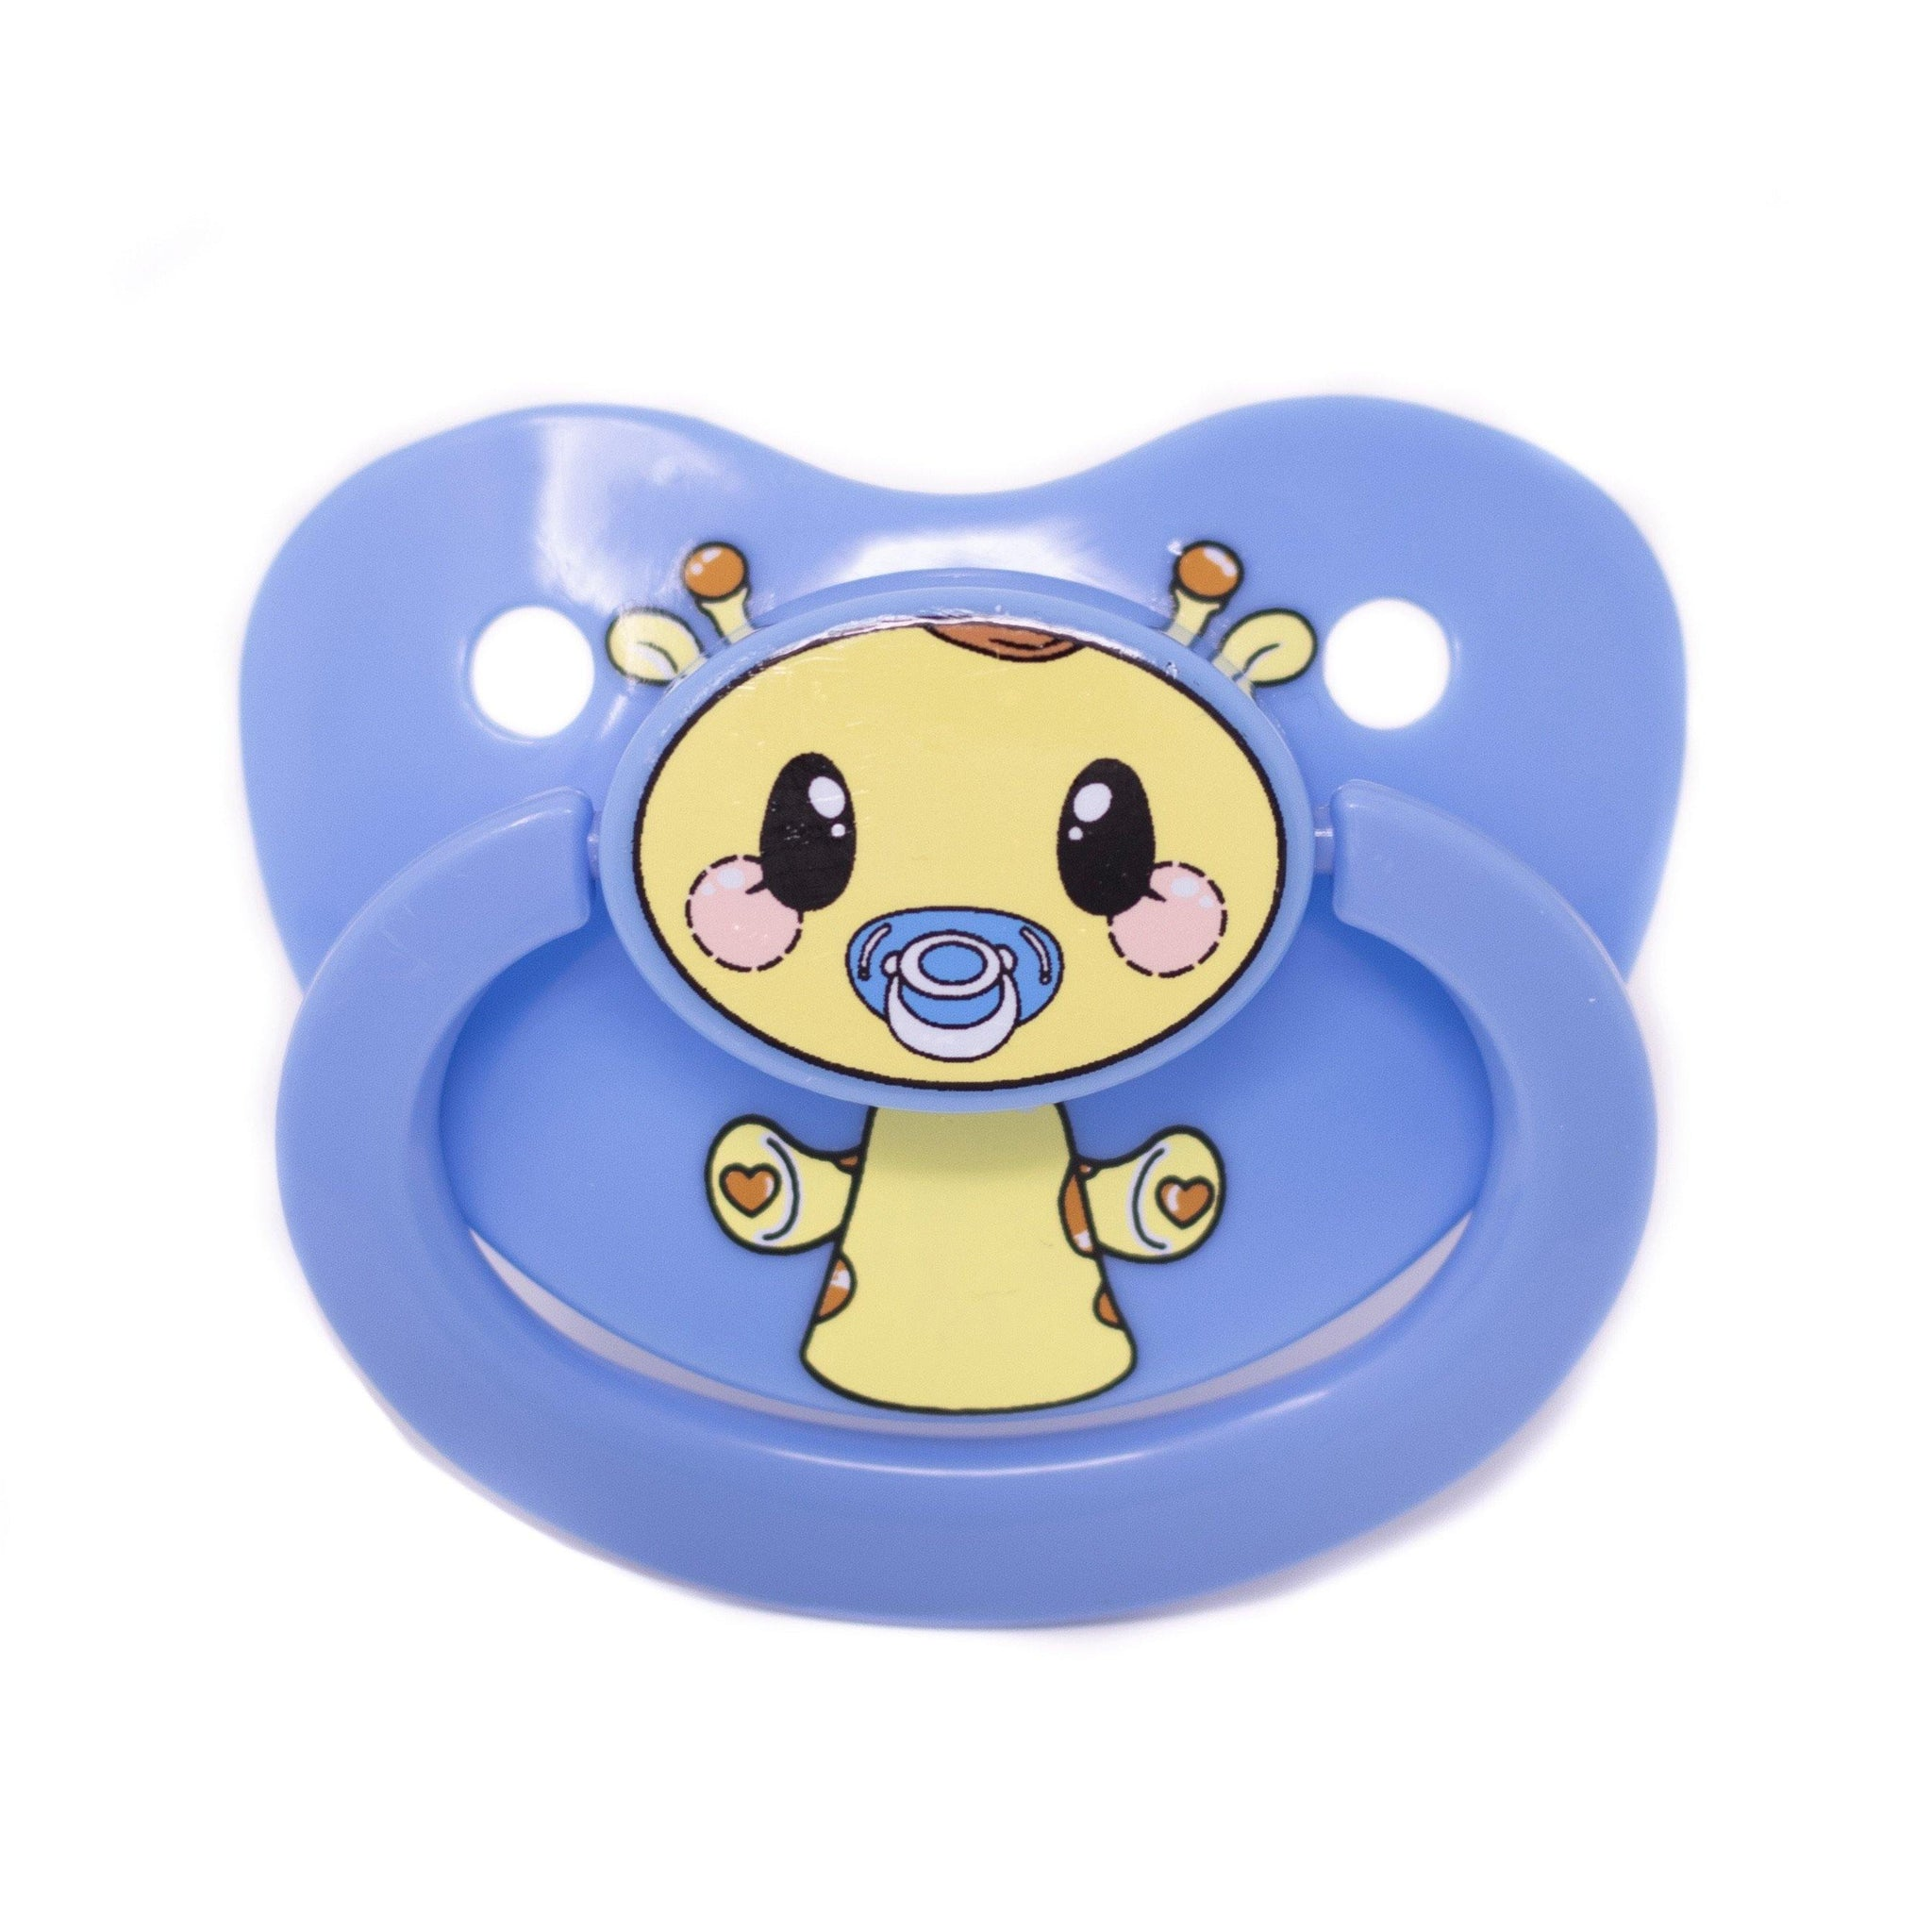 DDLG, ABDL, Little Space- Adult Pacifier. Adult Babies and Diaper Lovers